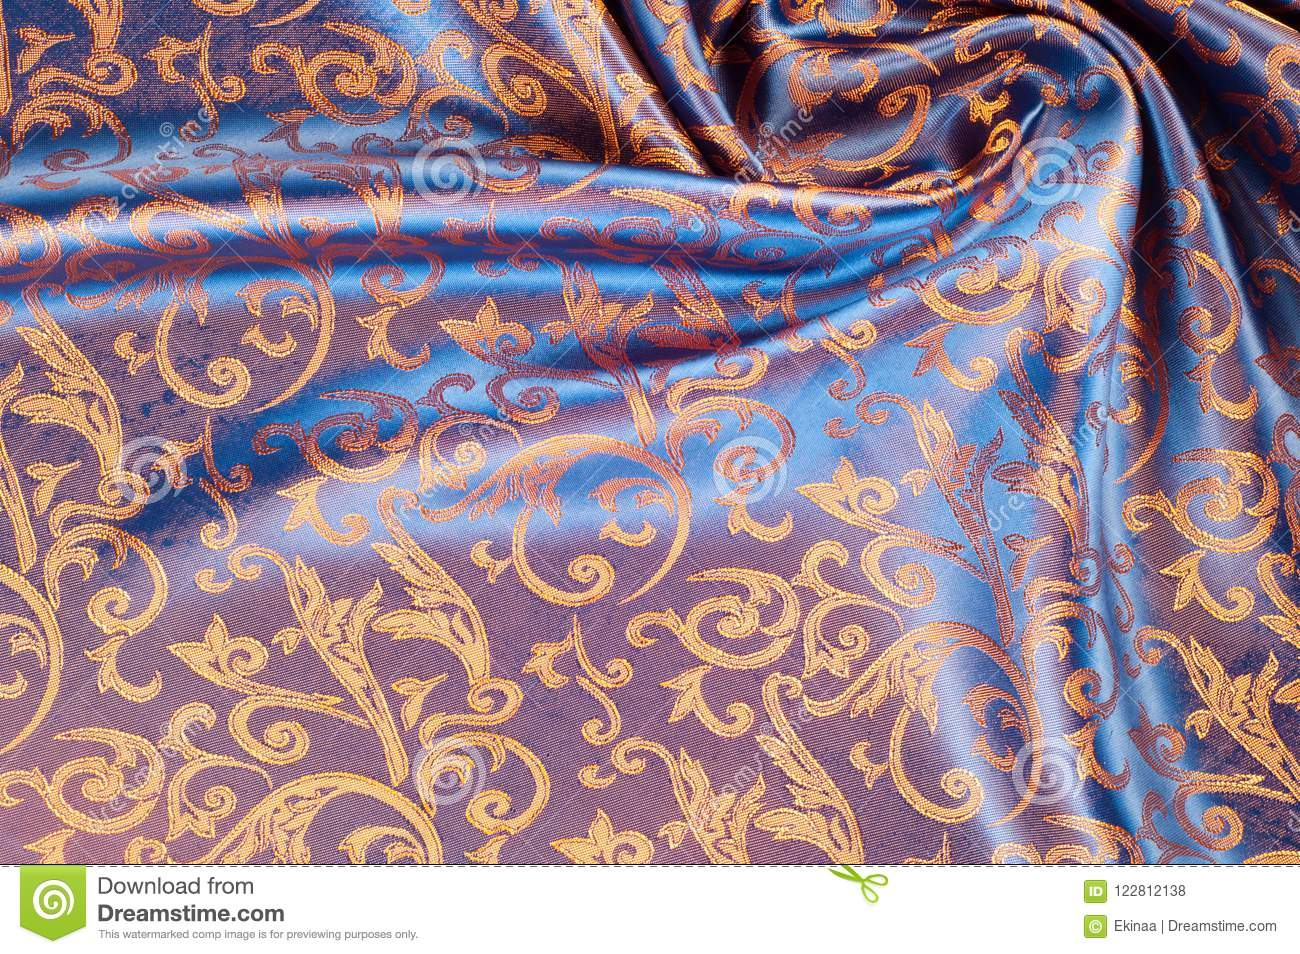 d647b1c6374 The texture of the silk fabric. Yellow Orange, Gold, Almond, Neon Carrot, a  fine, strong, soft, lustrous fiber produced by silkworms in making cocoons  and ...